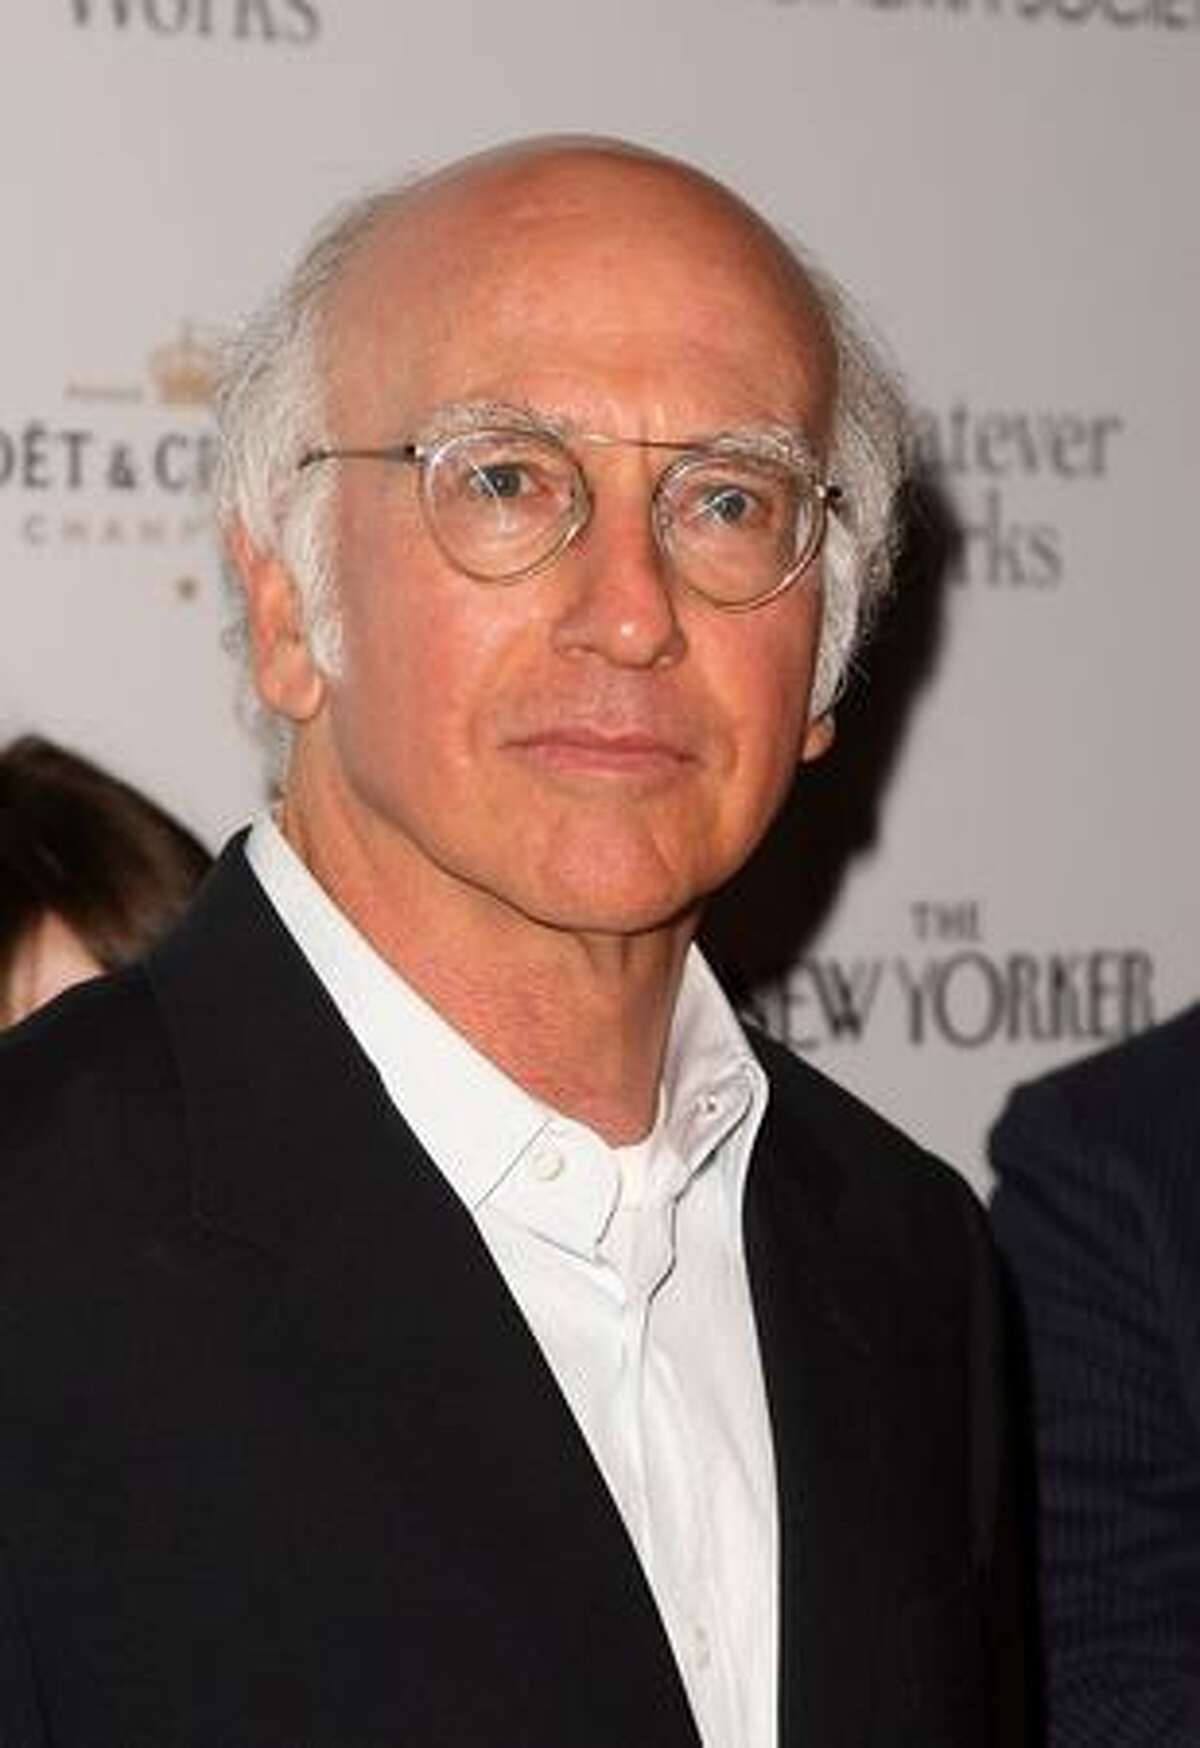 Actor Larry David attends a screening of